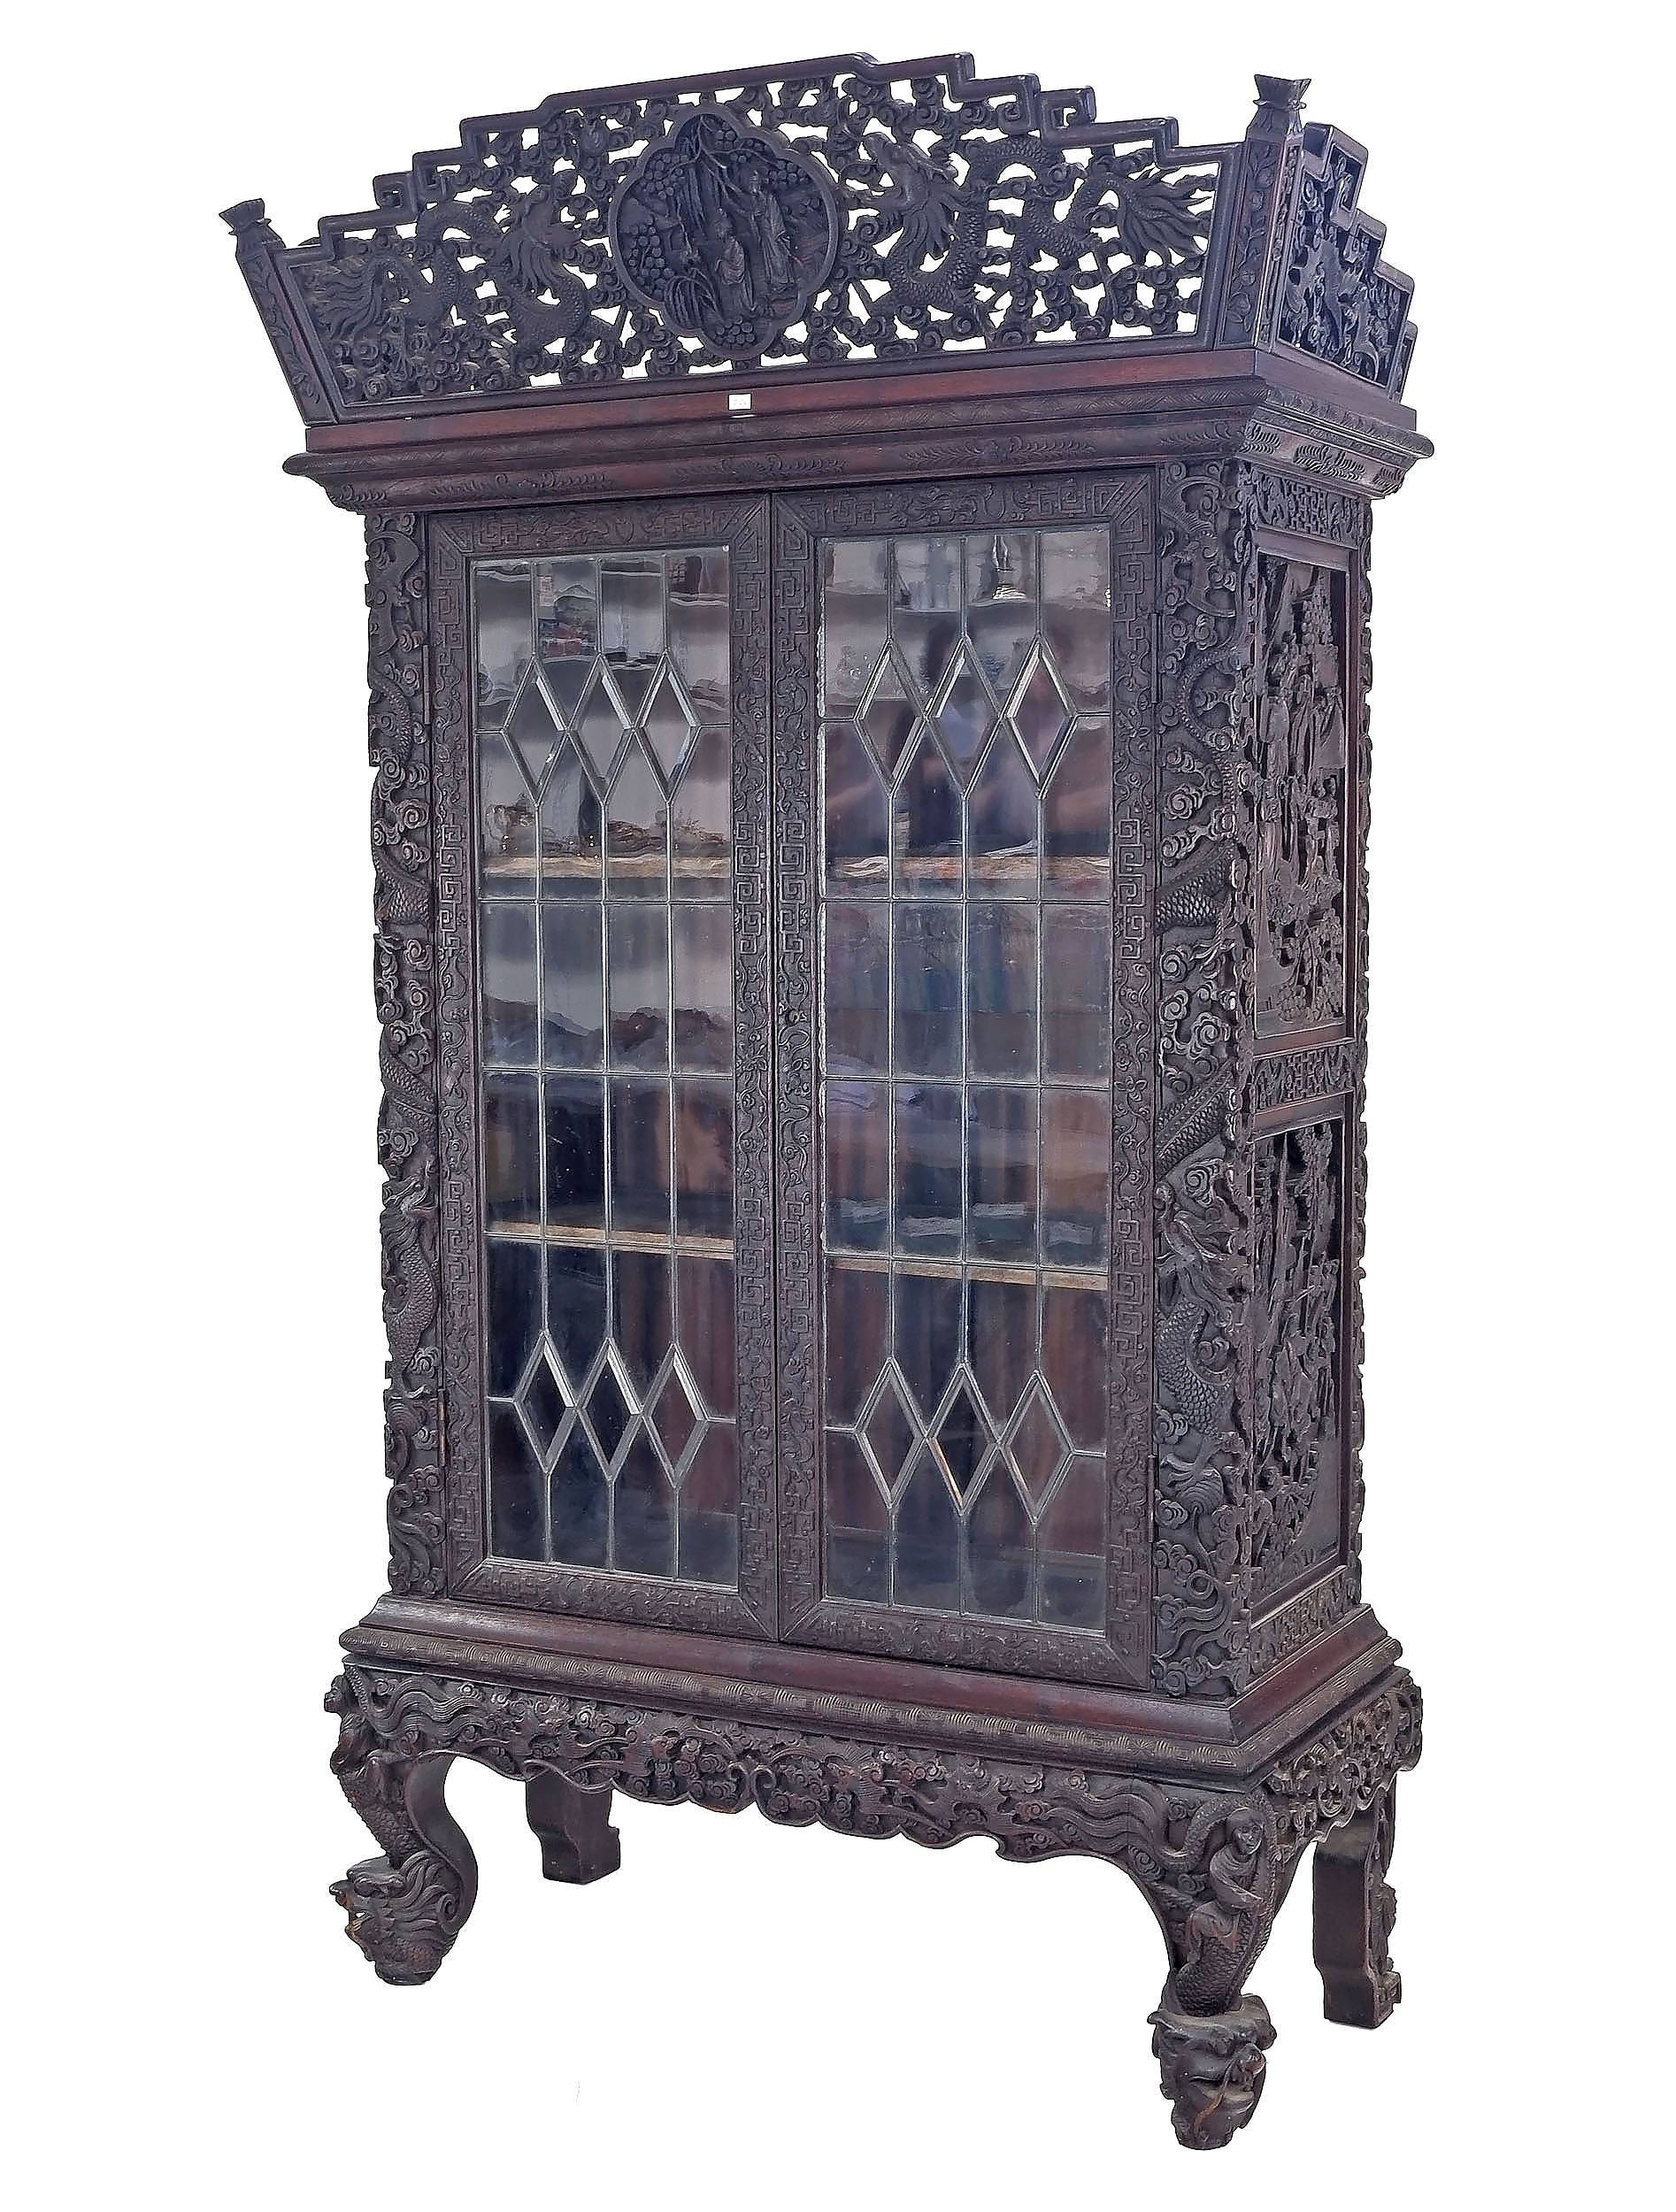 'Impressive Antique Chinese Export Hardwood Display Cabinet Profusely Carved with Dragons and Bats in Clouds, Circa 1900'